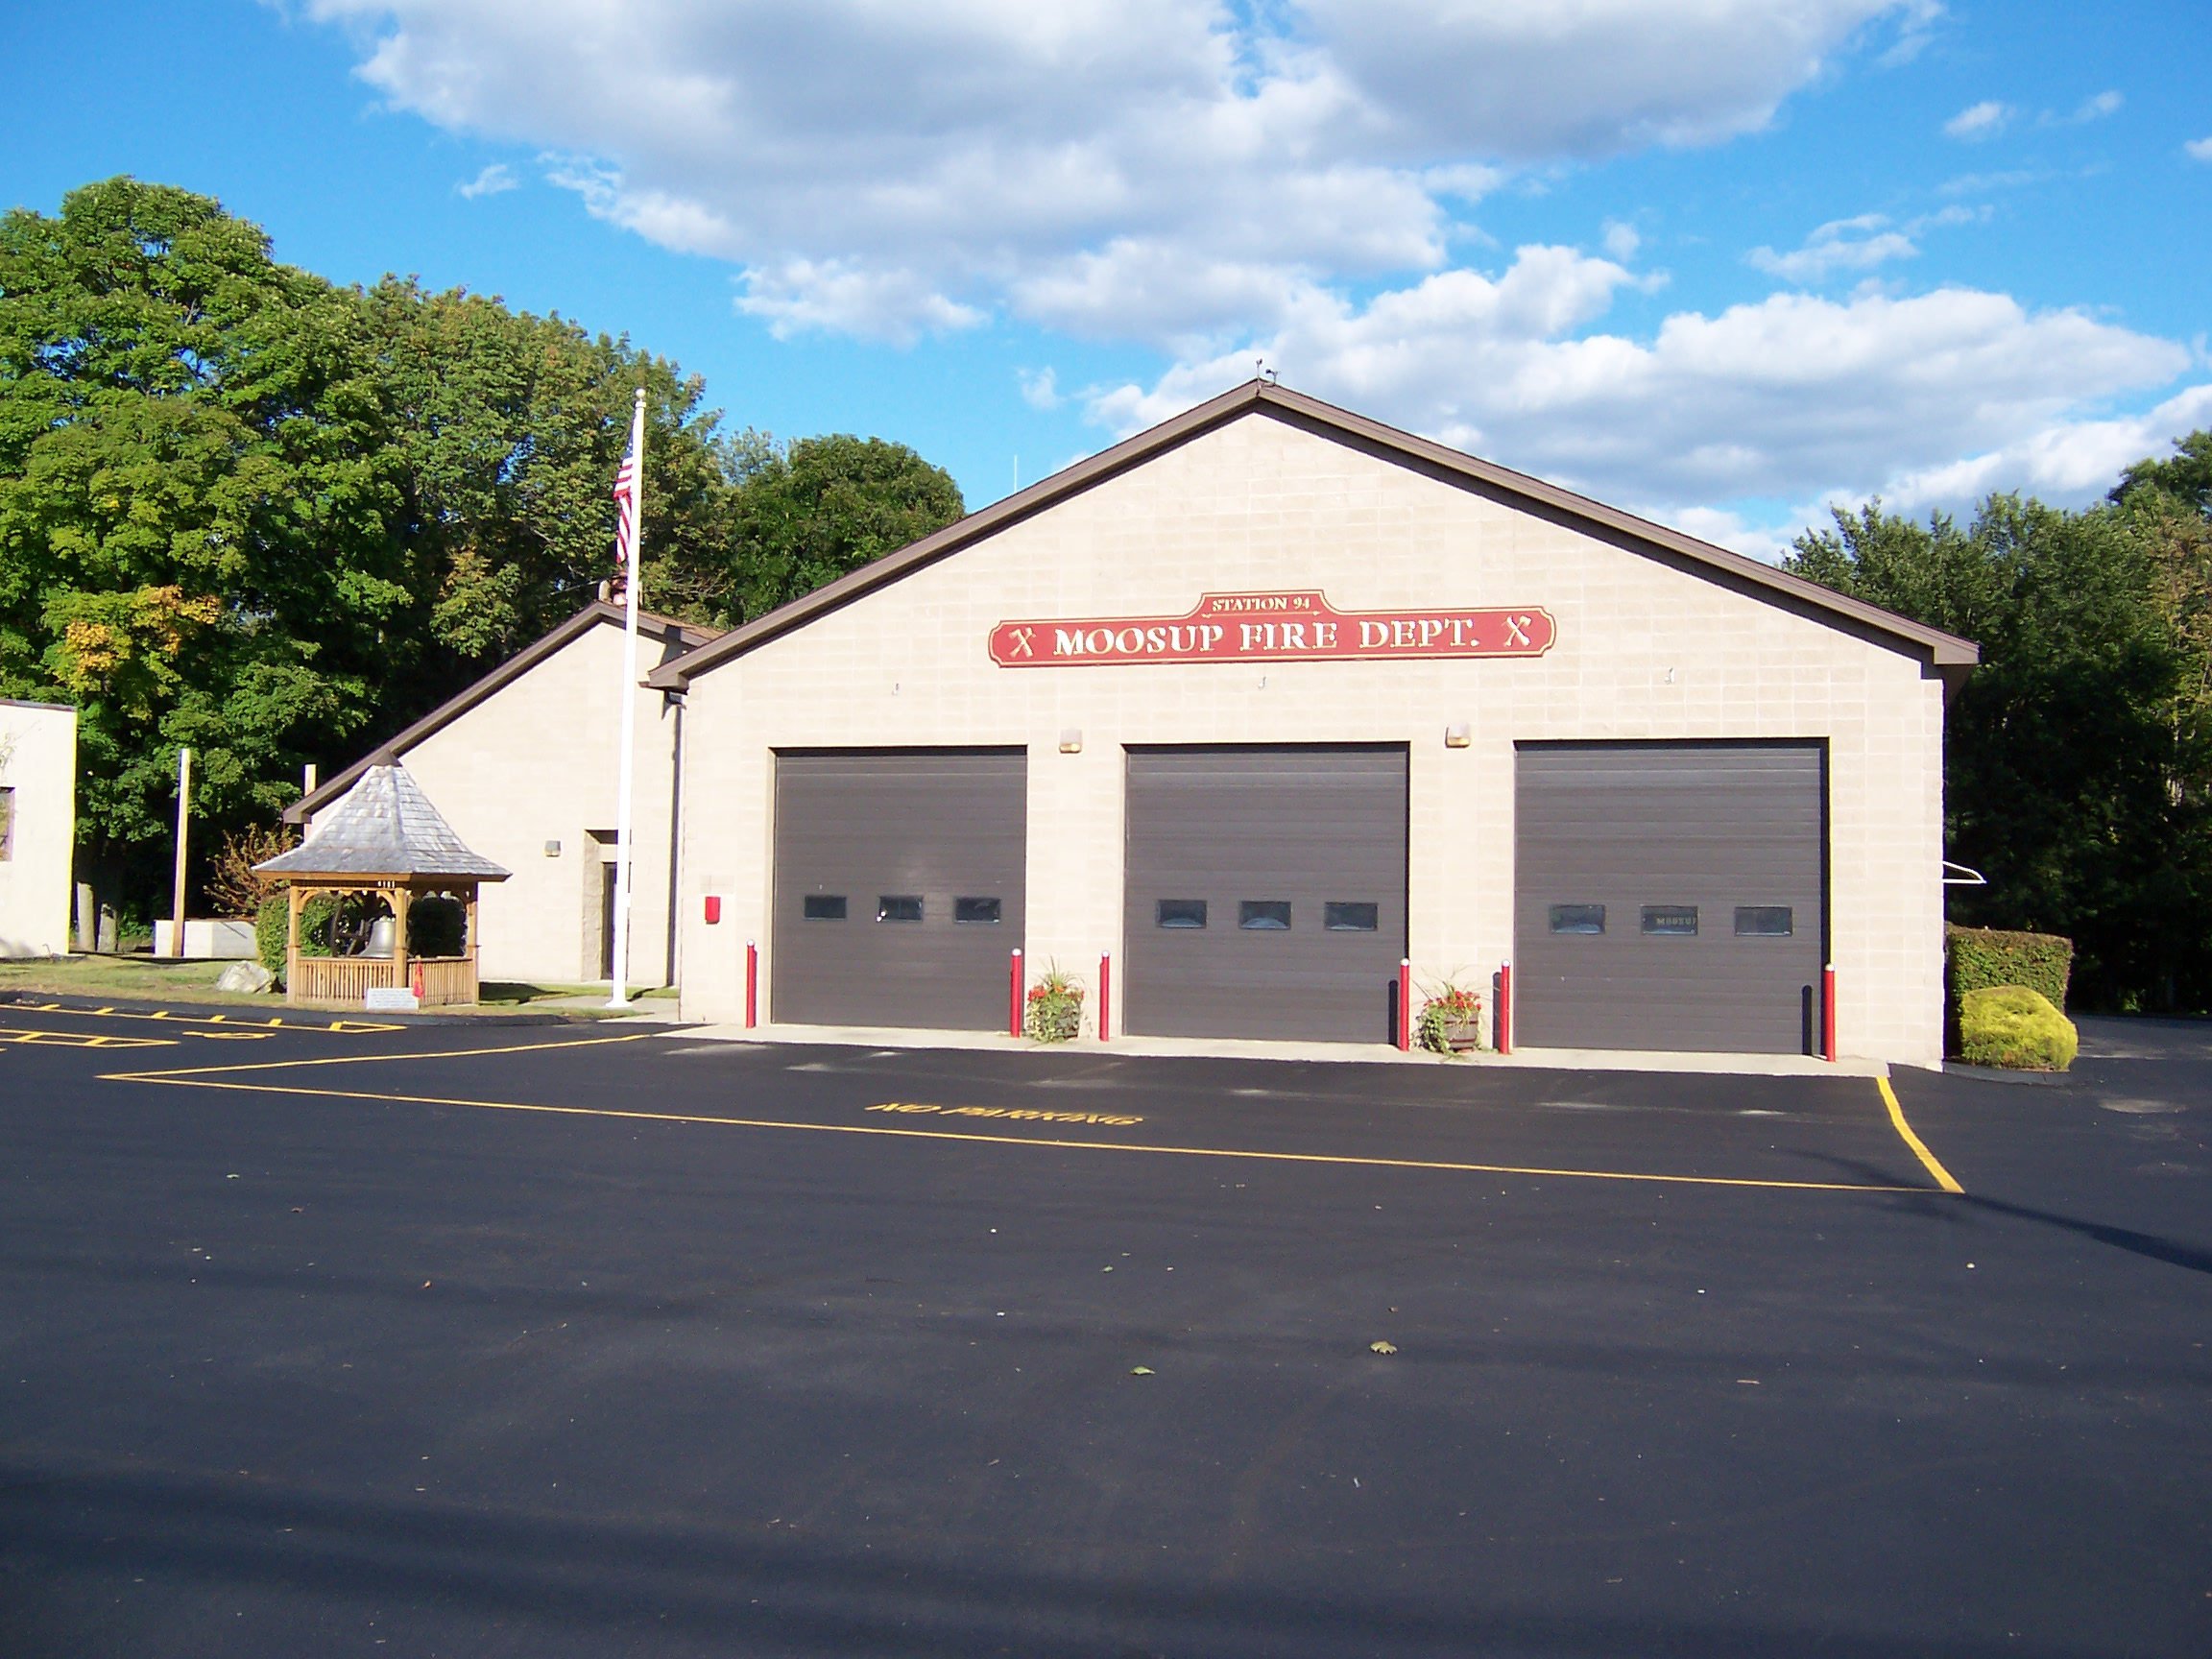 Full view of Moosup Fire Department